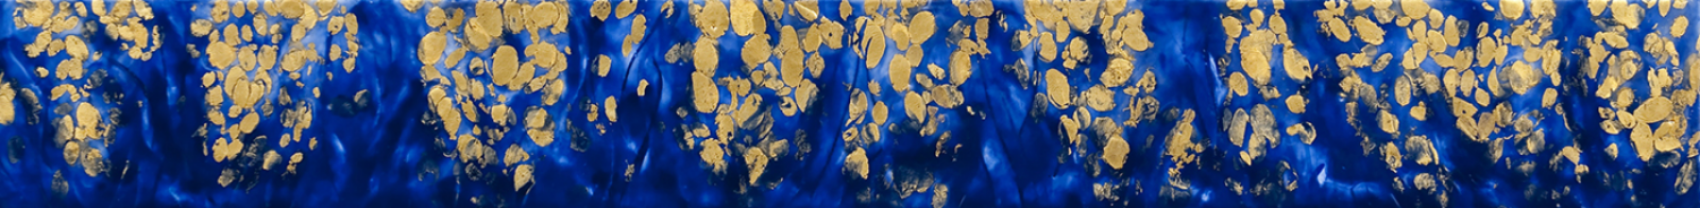 "Stages of Fire, ""the very heart of the flame""   ,  flamma lapis   2010 by Maggie Simonelli   Encaustic, Lapis lazuli + 24 kt gold on floating birch panel   9"" x 72"""